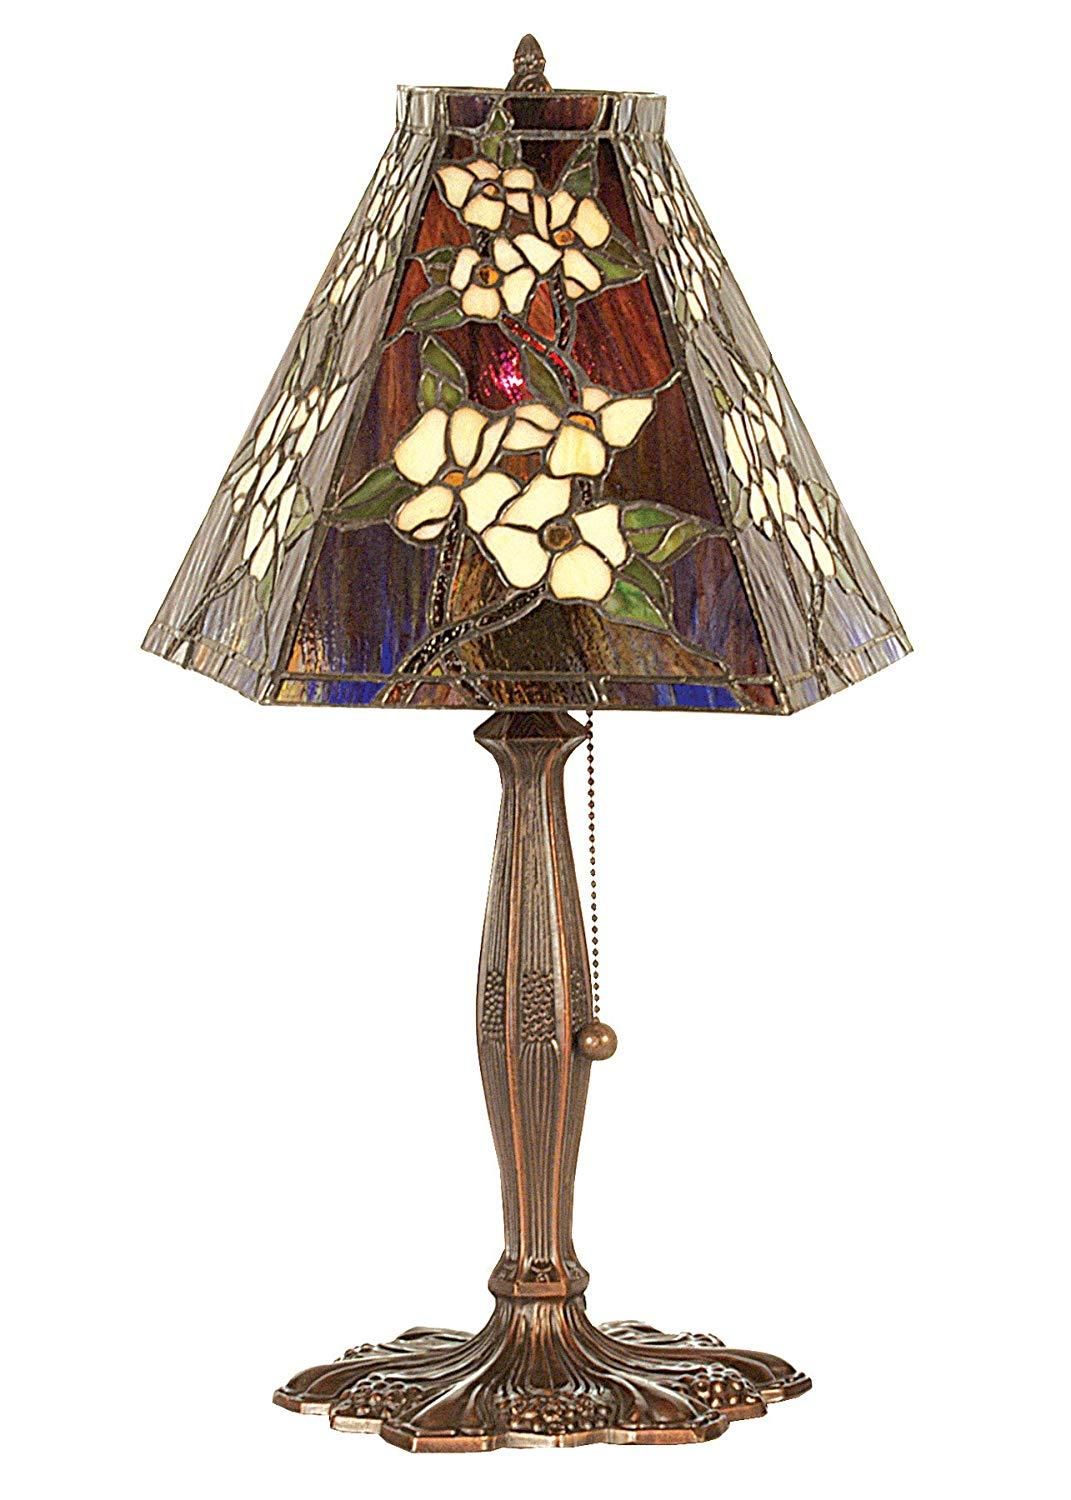 meyda tiffany oriental peony accent lamp table lamps small bedroom chairs chestnut white couch slipcovers iron garden corner and gold desk vintage marble coffee grill tools cloth